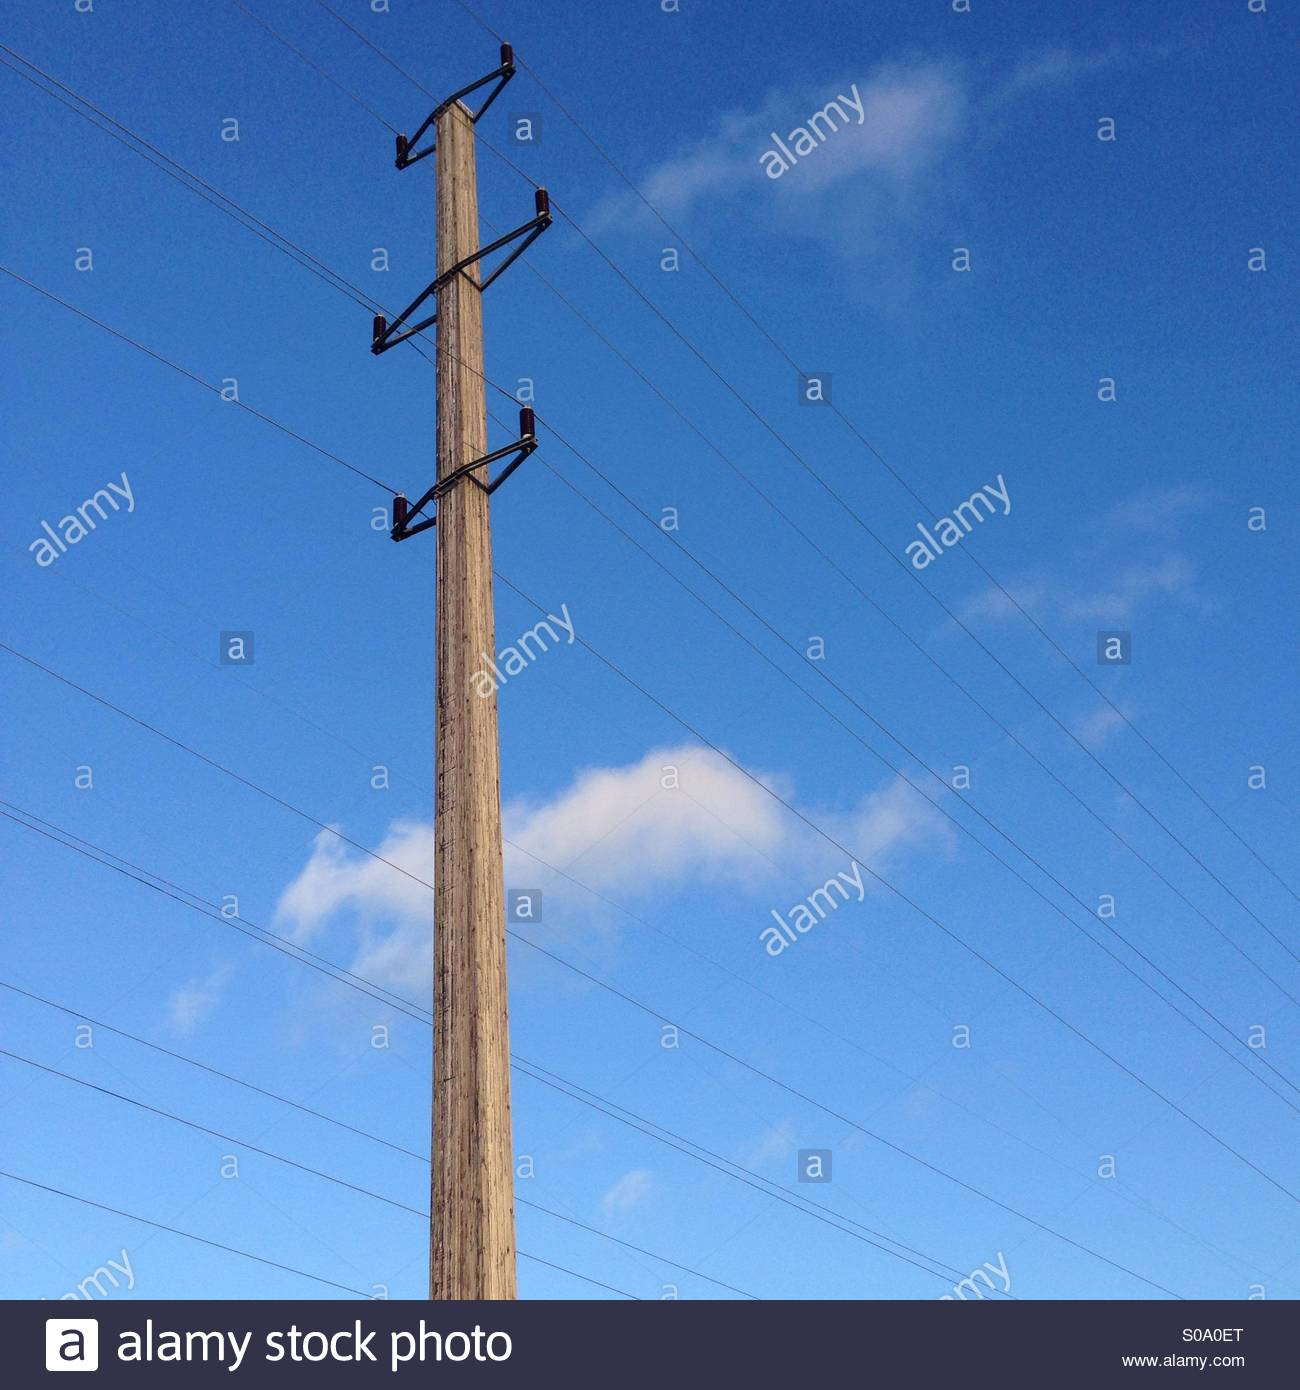 Powerlines shot from below with the sky in the background. - Stock Image